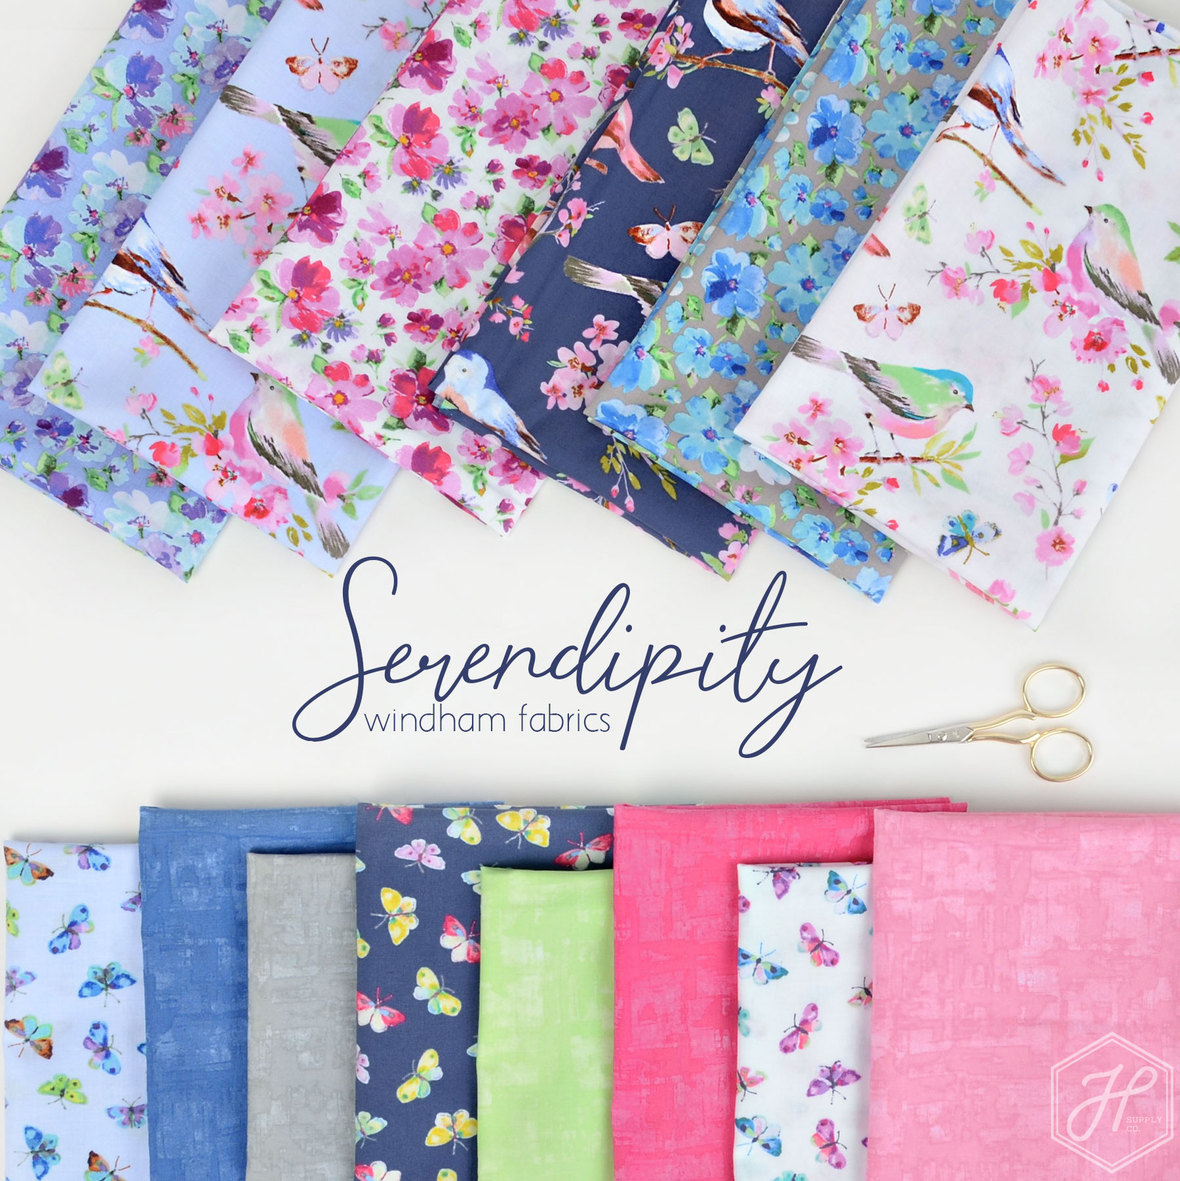 Serendipity-Fabric-Windham-Fabric-at-Hawthorne-Supply-Co